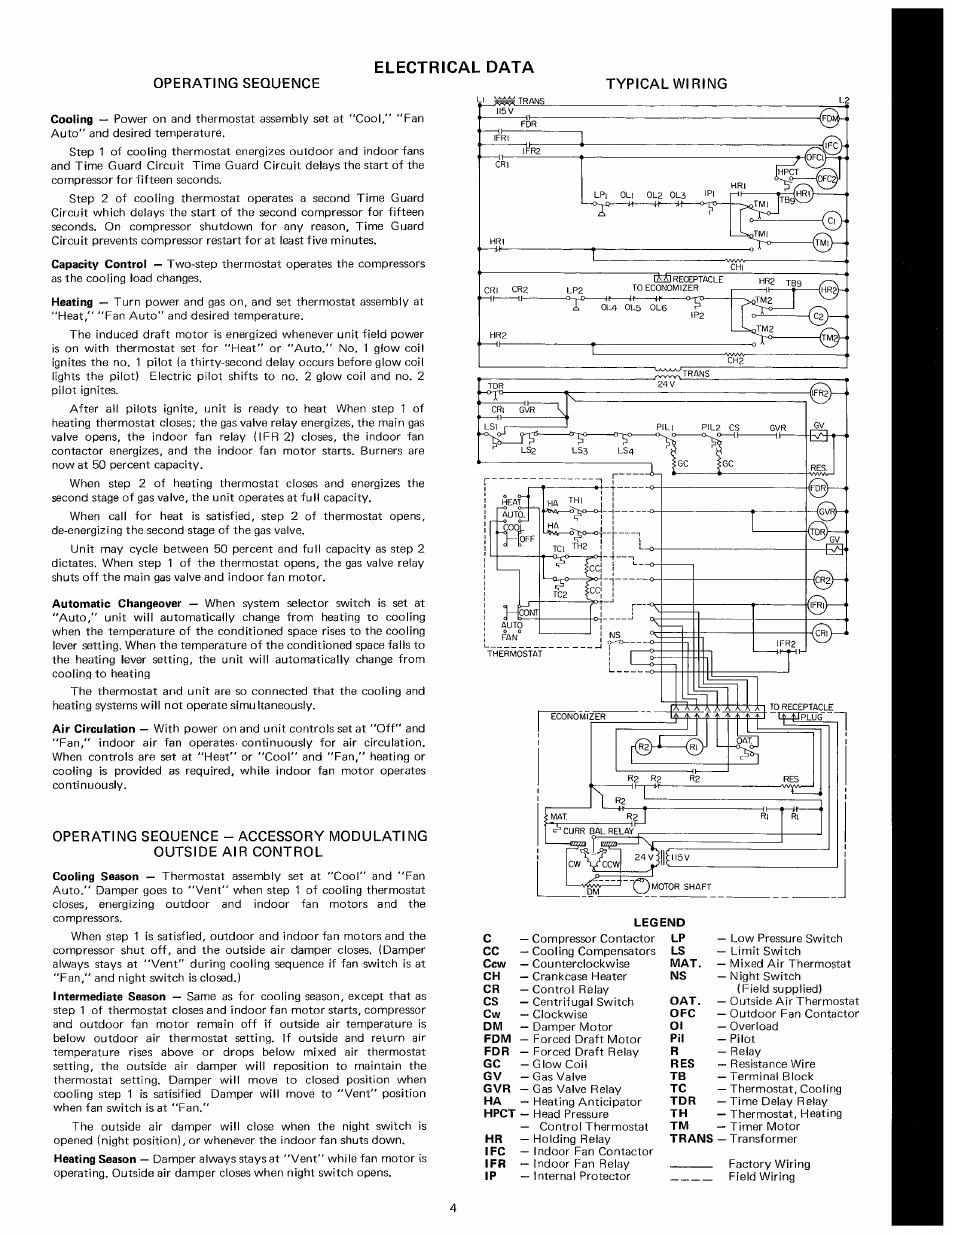 carrier 48 series economizer wiring diagram   43 wiring